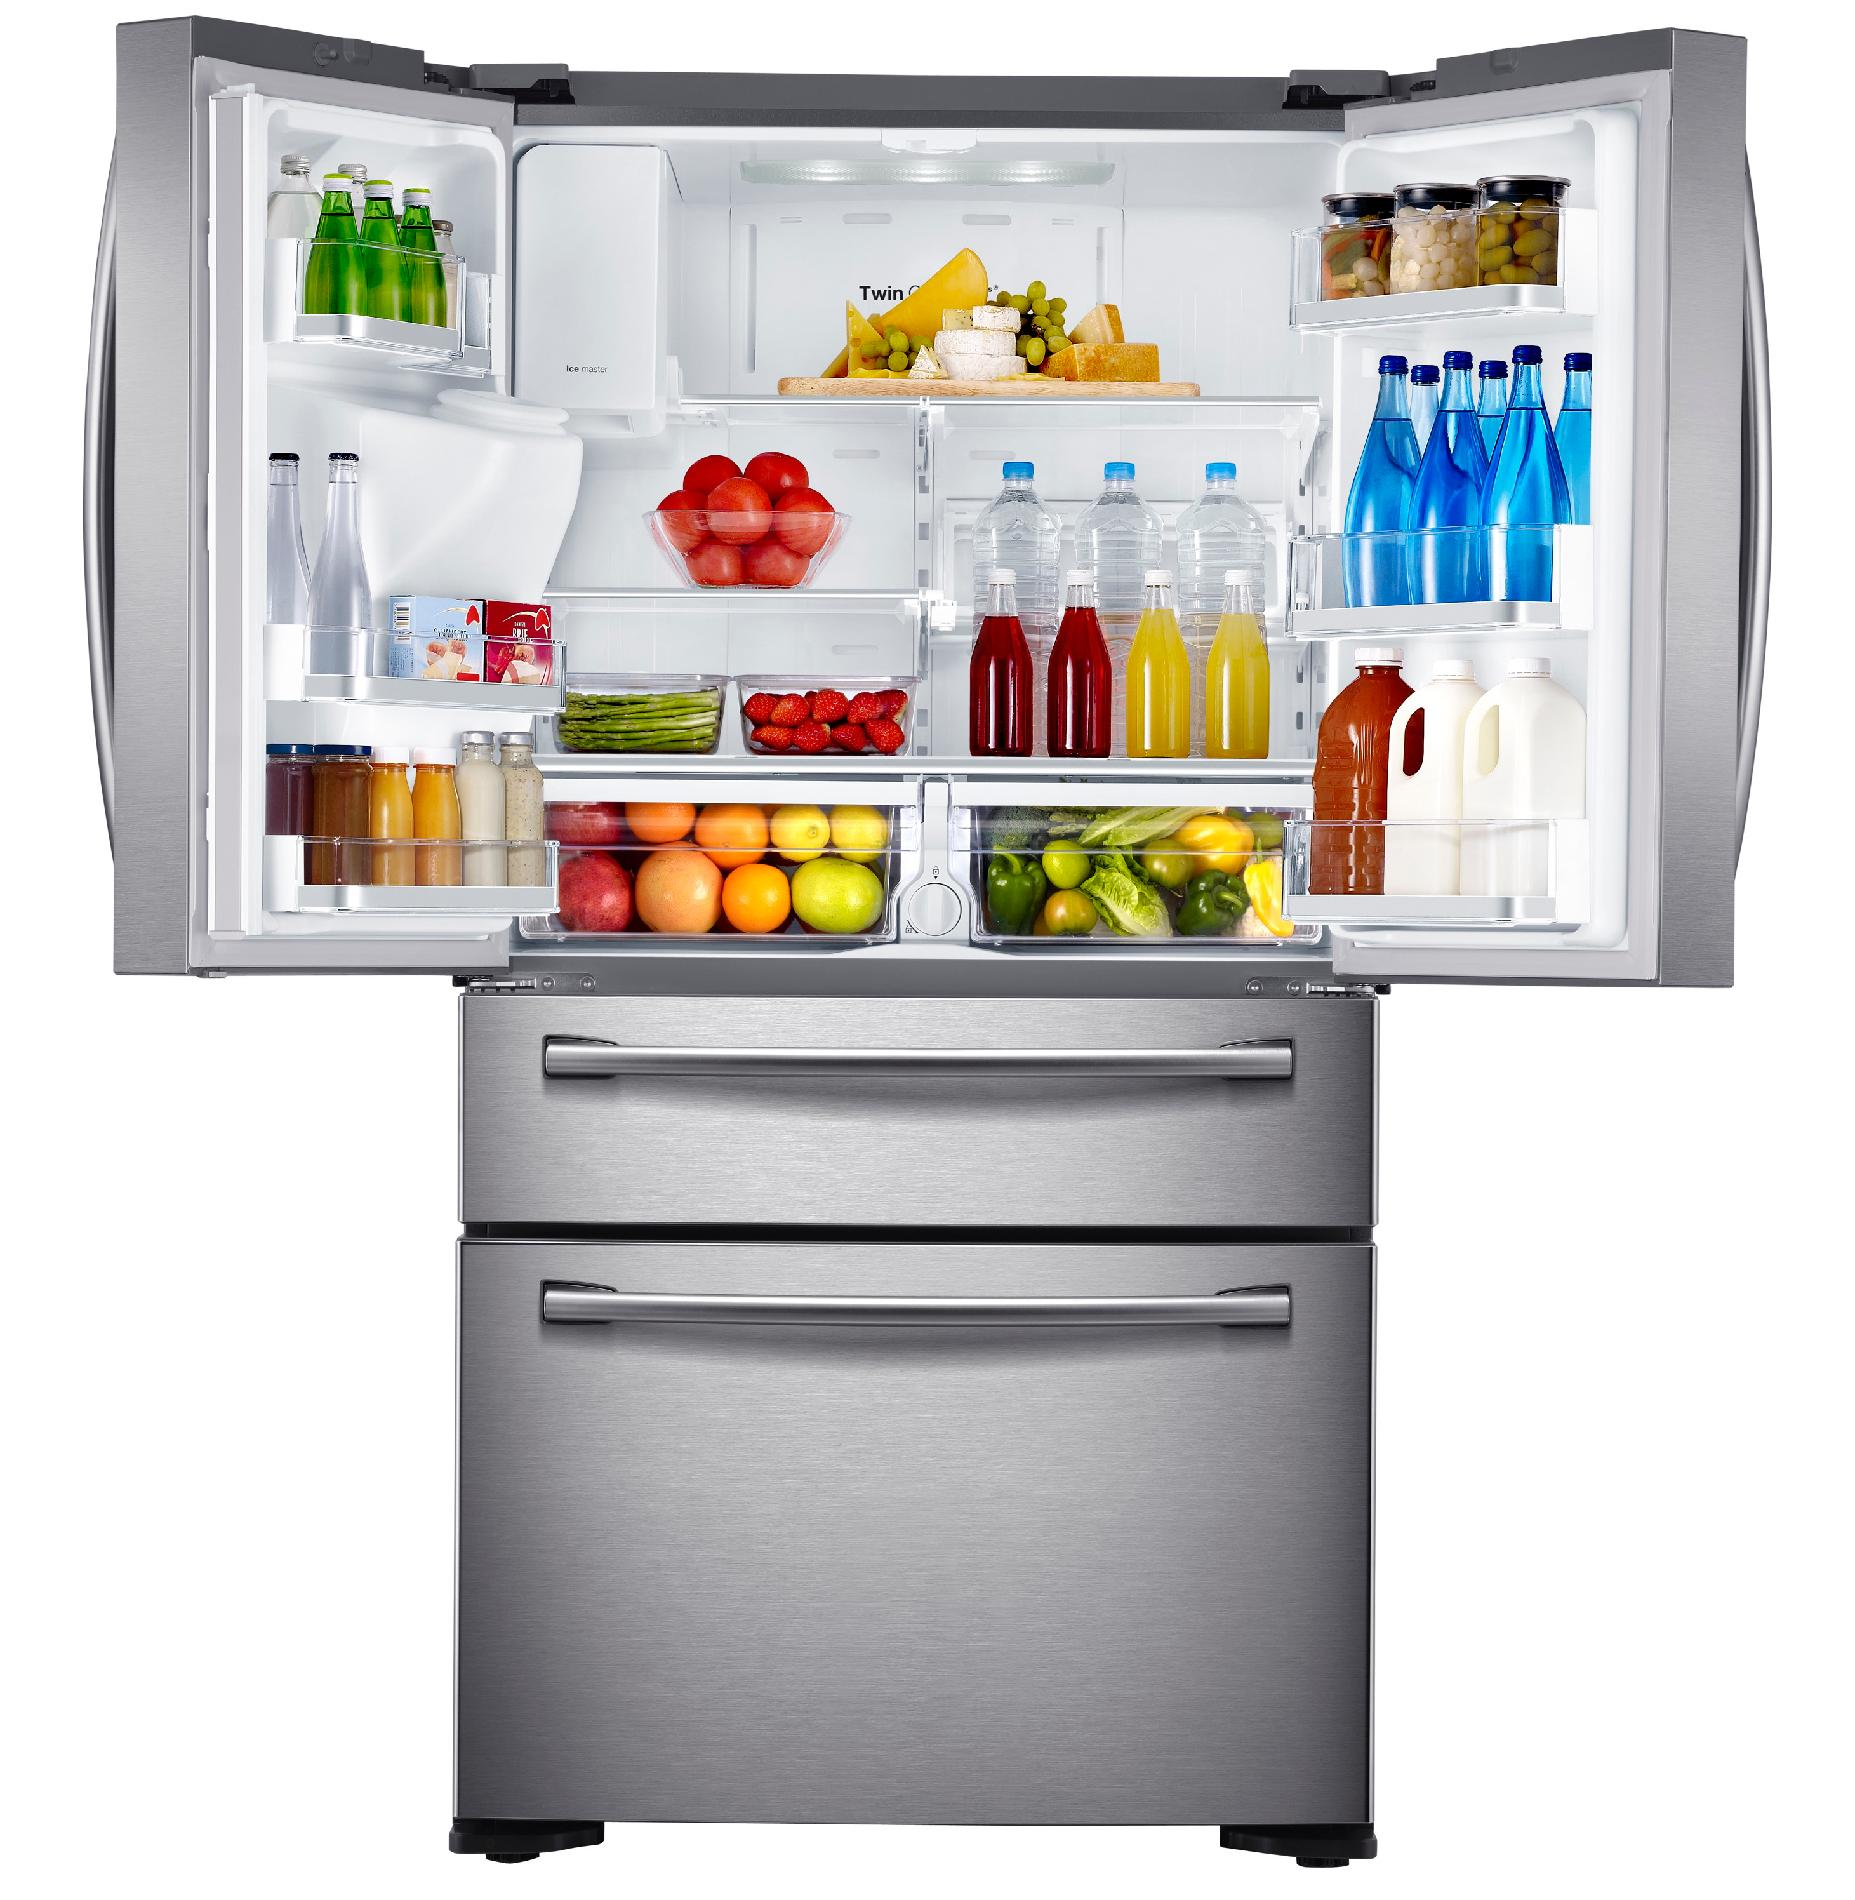 Samsung 24 cu. ft. Counter-Depth 4-Door Refrigerator w/ FlexZone™ Drawer - Stainless Steel